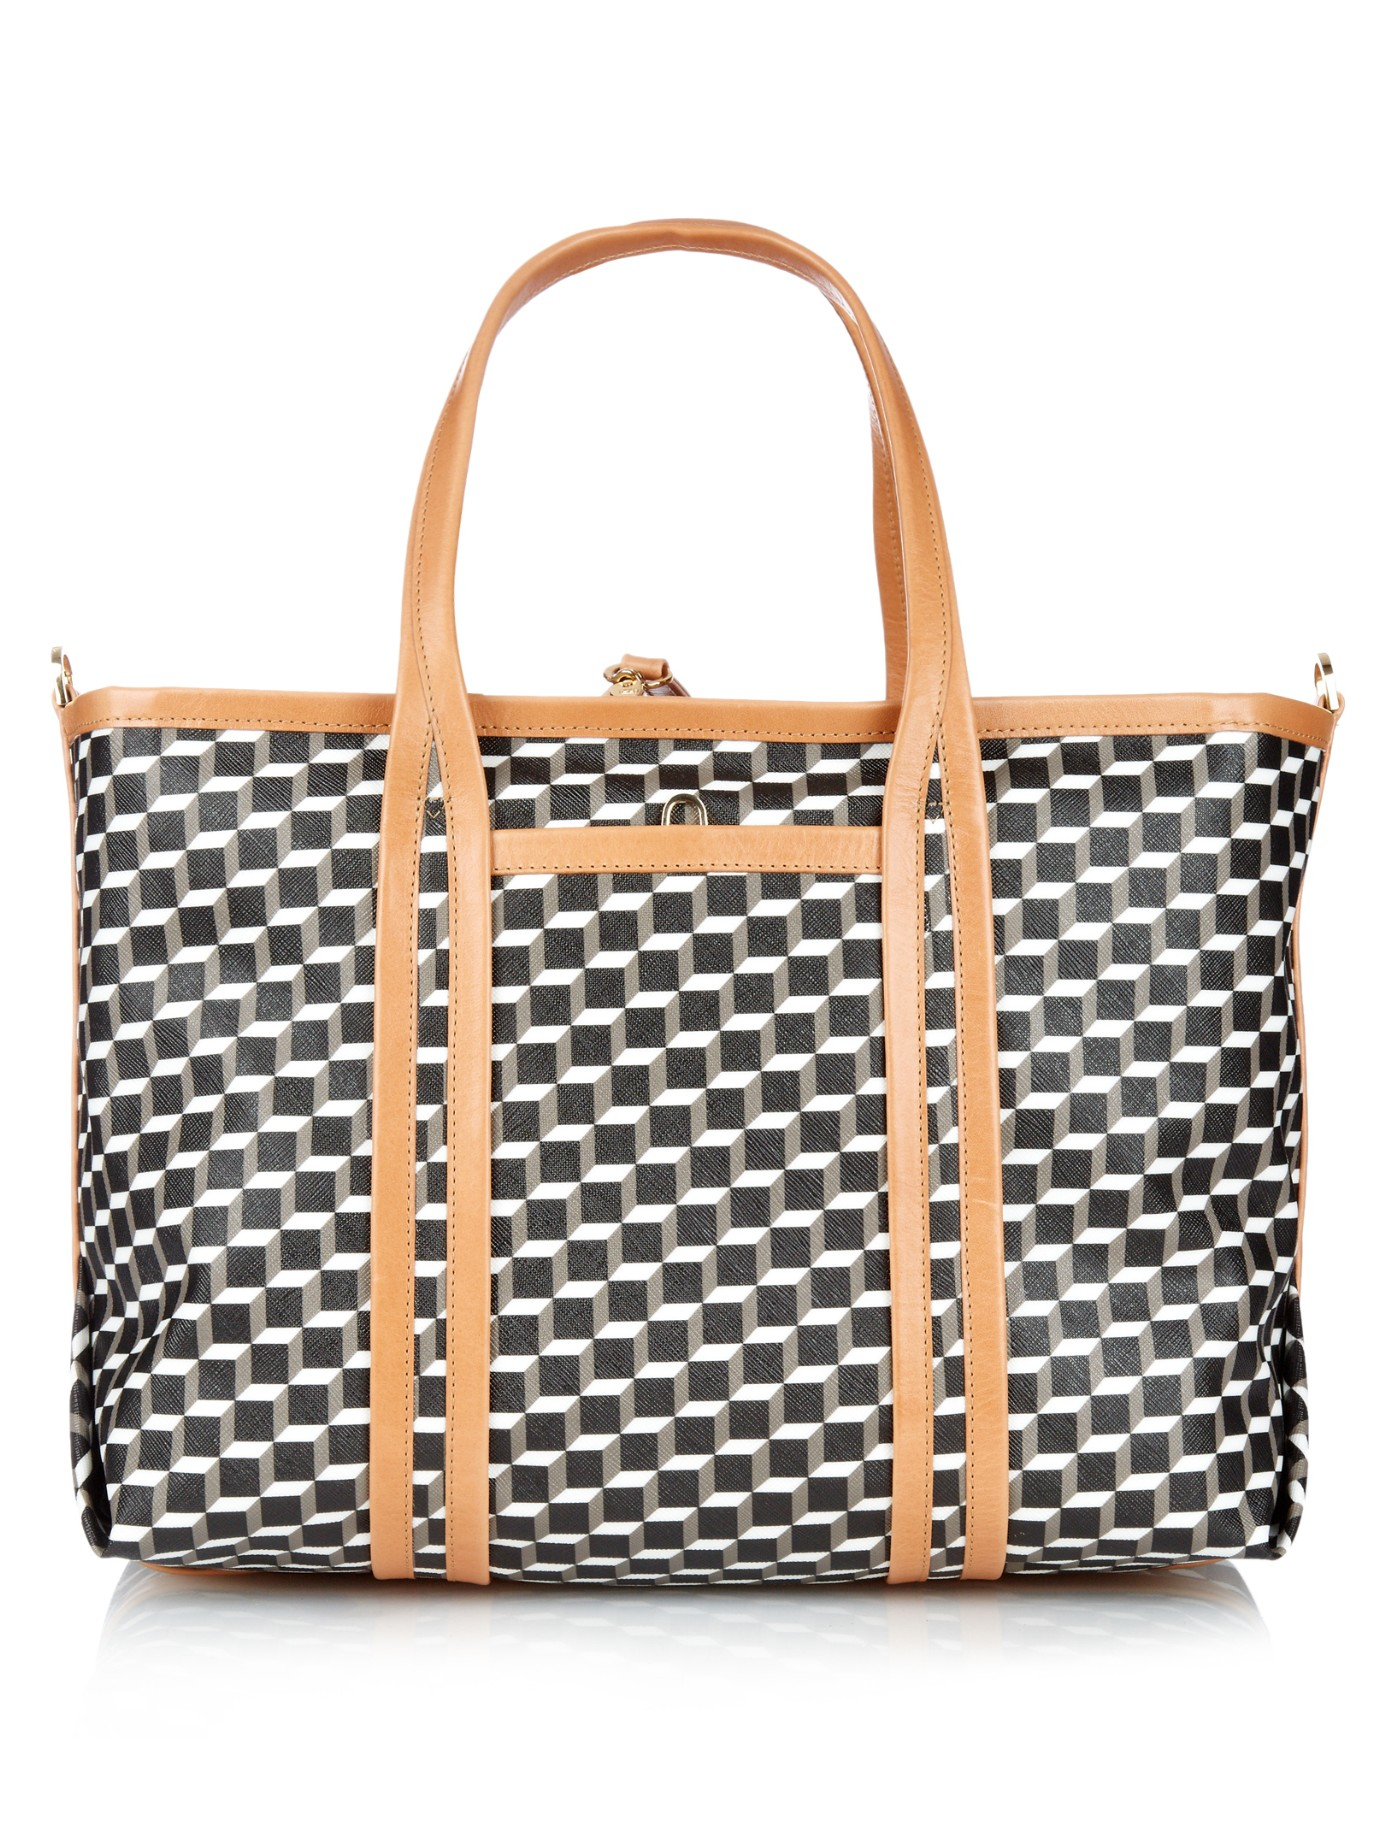 Tote Bag in Black and White Cube Canvas and Calfskin Pierre Hardy Buy Cheap How Much TJIaIMUG9m